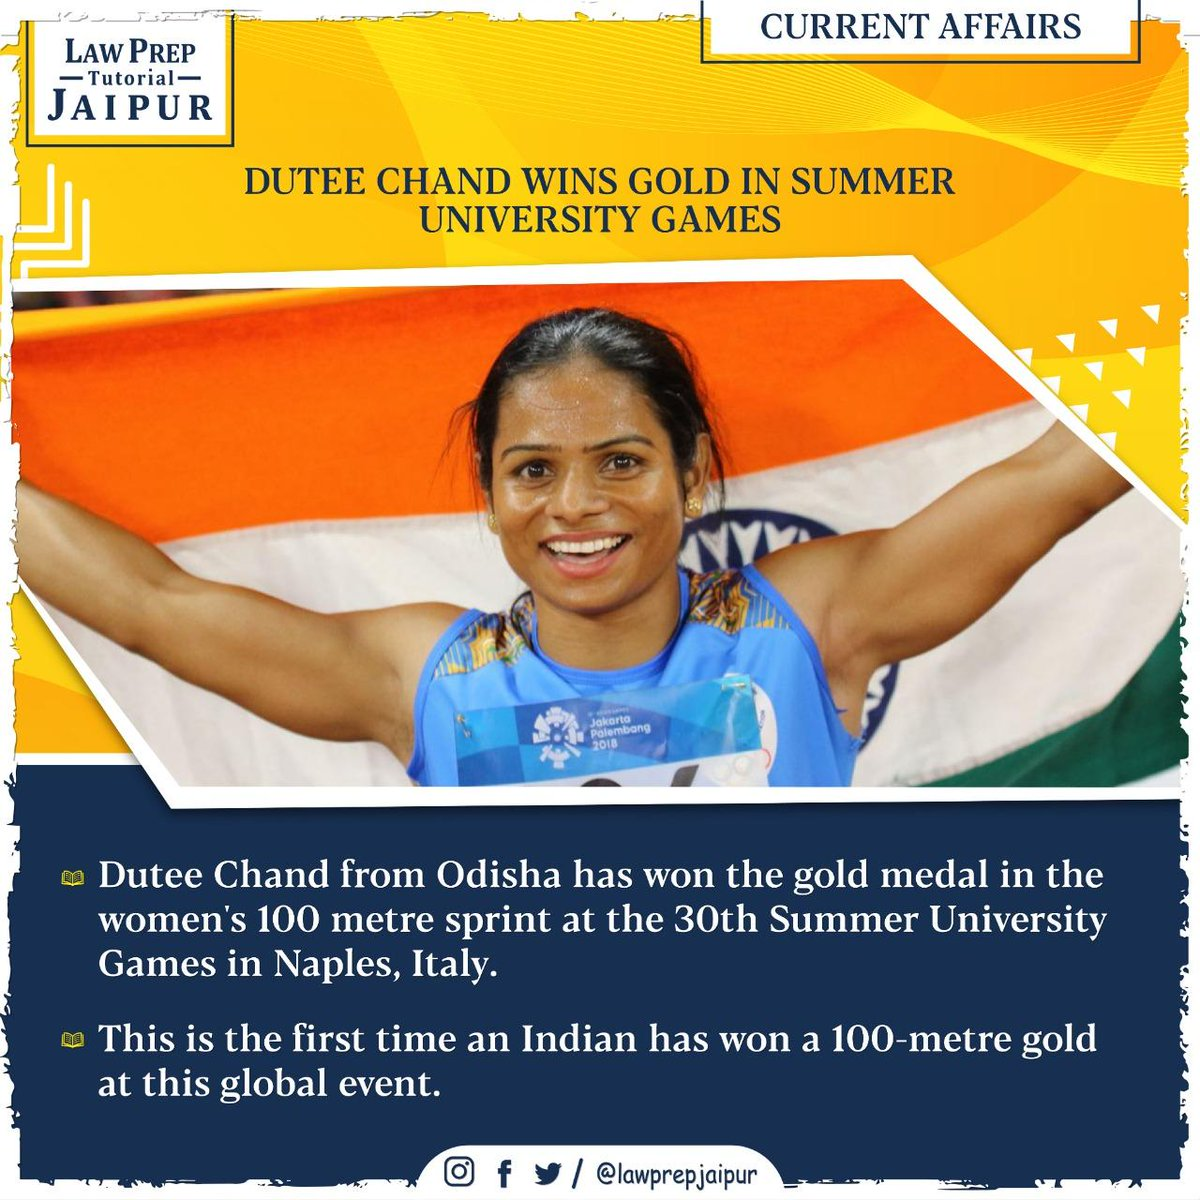 Stay connected for more such Current Affairs.  #Gk #CLATGK #CLAT2020 #CLATQuestions #currentaffairs #LegalGk #DuteeChand #WorldUniversityGames #Naples #MakingIndiaProud